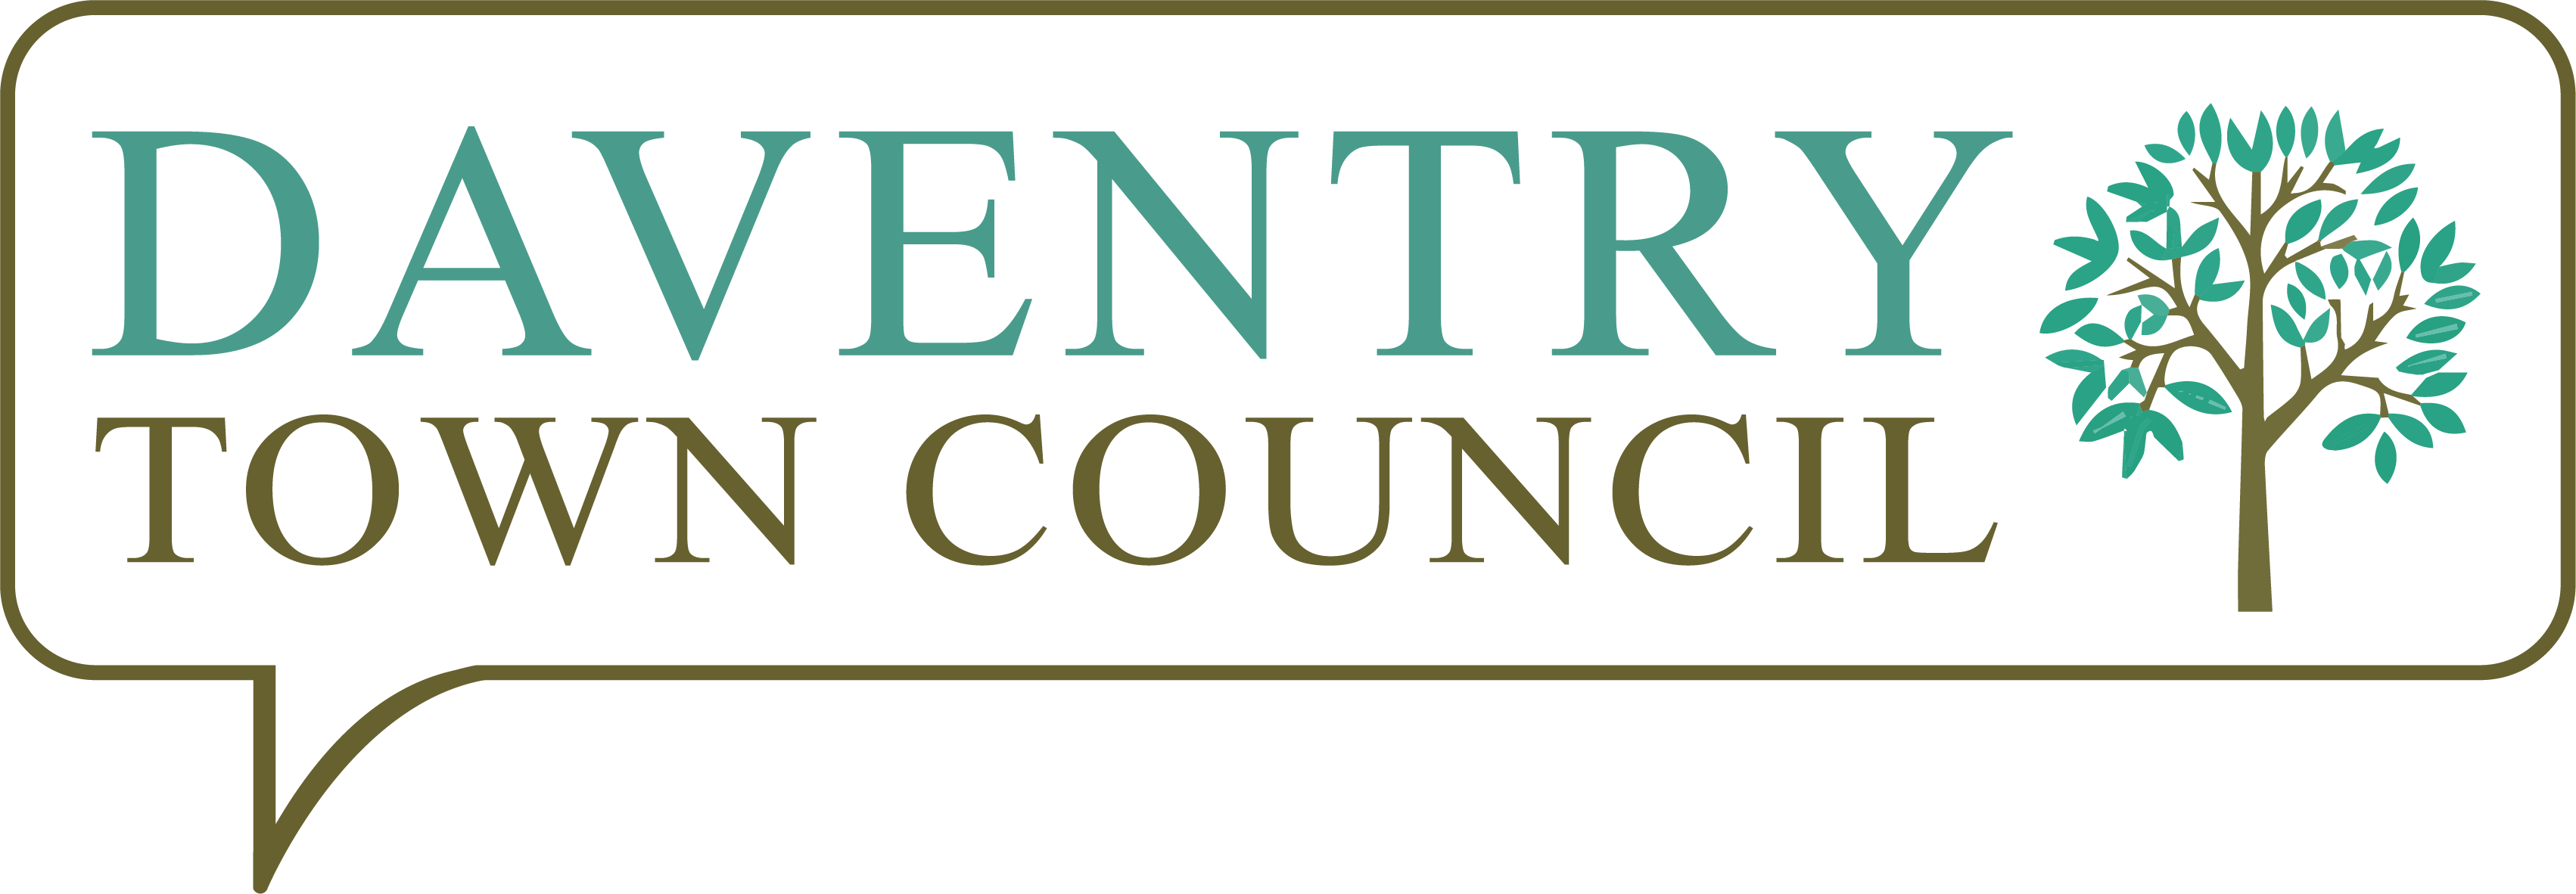 Daventry Town Council's logo